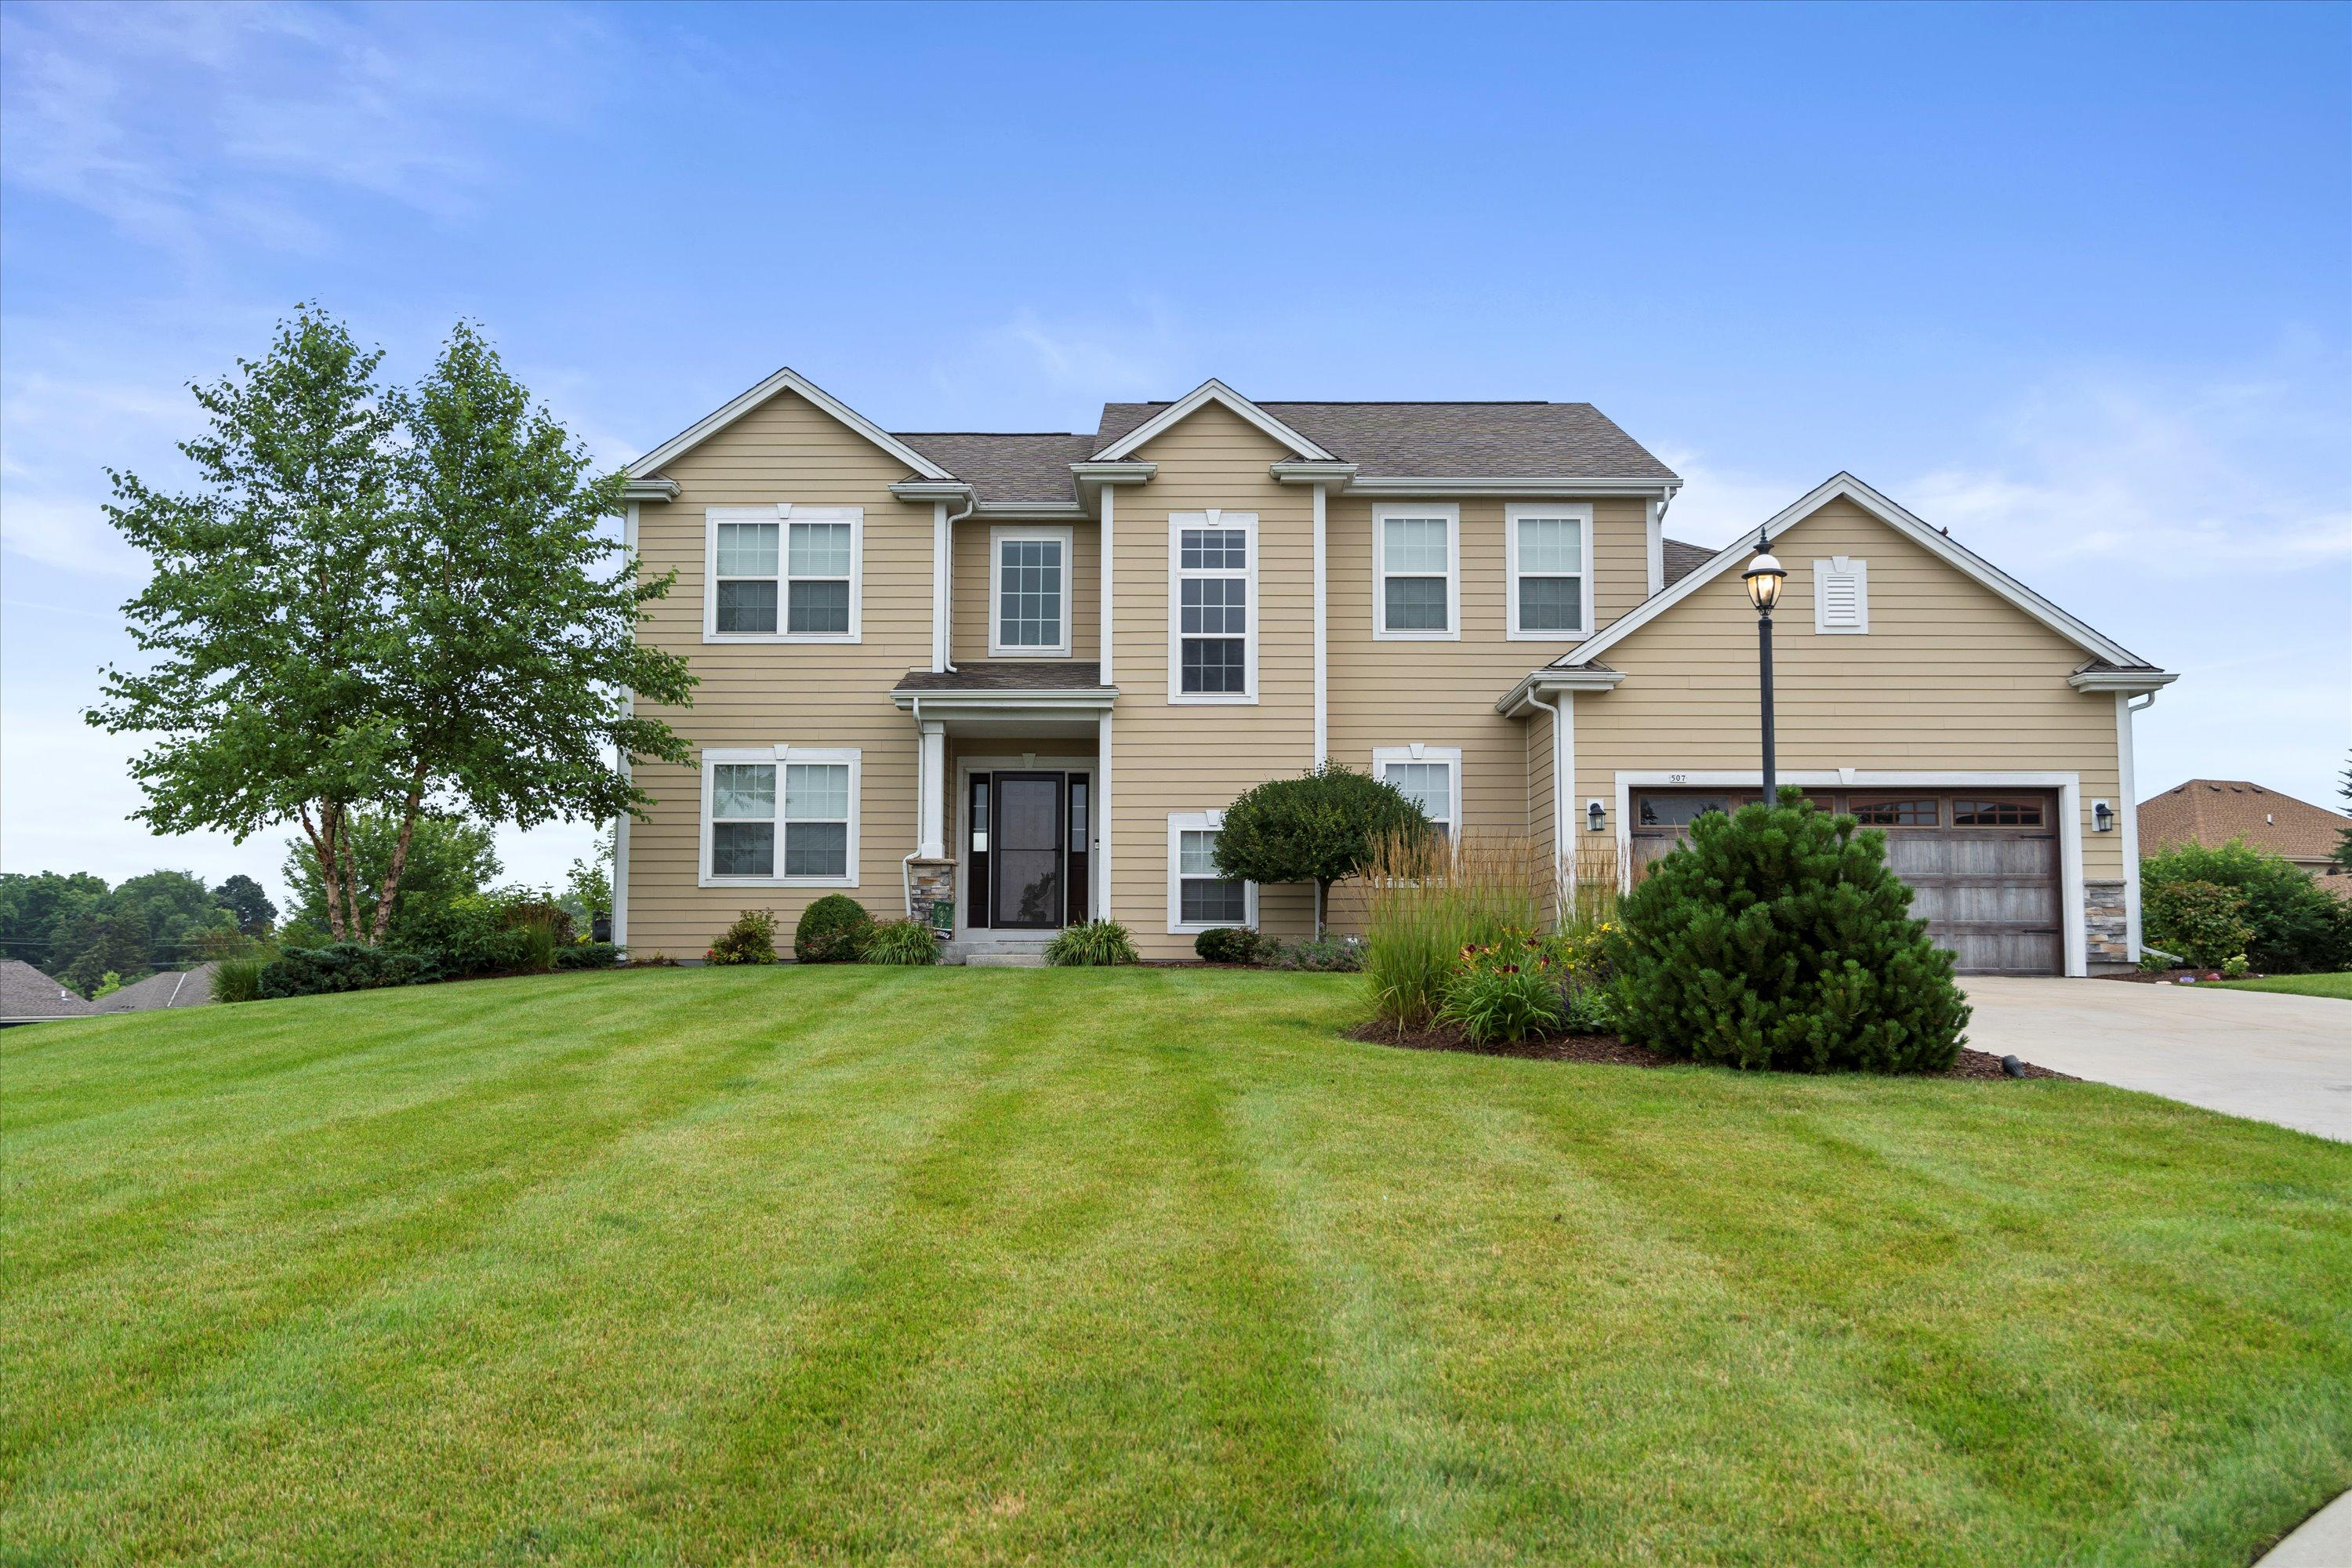 507 Oakmont Dr, Waukesha, Wisconsin 53188, 5 Bedrooms Bedrooms, 11 Rooms Rooms,3 BathroomsBathrooms,Single-Family,For Sale,Oakmont Dr,1754859